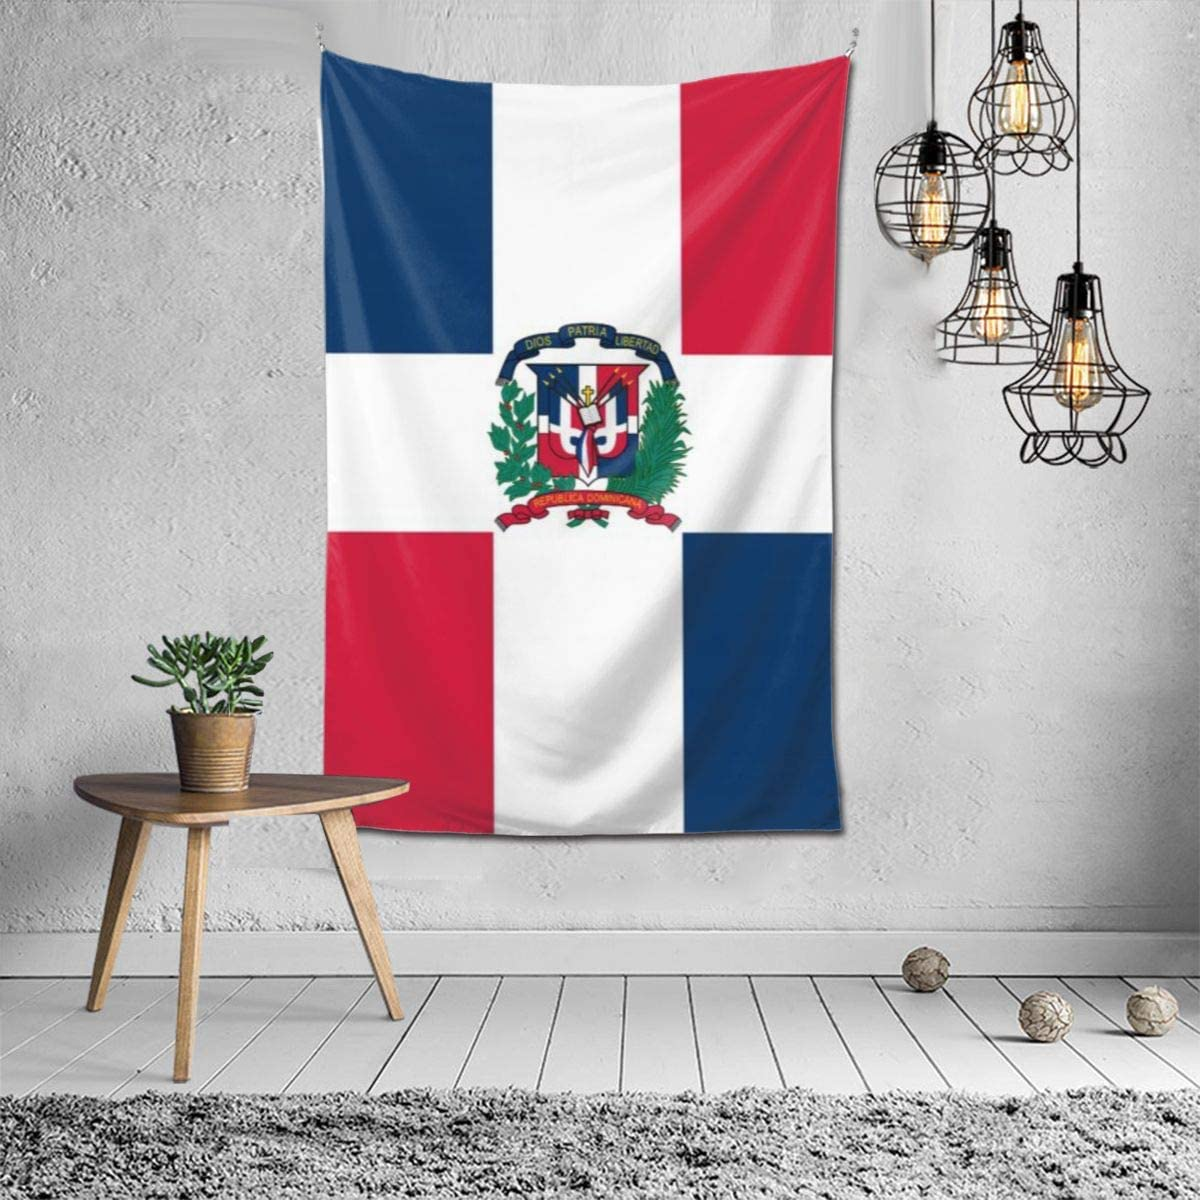 OHMYCOLOR Dominican Republic Flag Tapestry Indoor Wall Art Hanging Home Bedding Tapestries for Bedroom Living Room Dorm Decor 6040inch